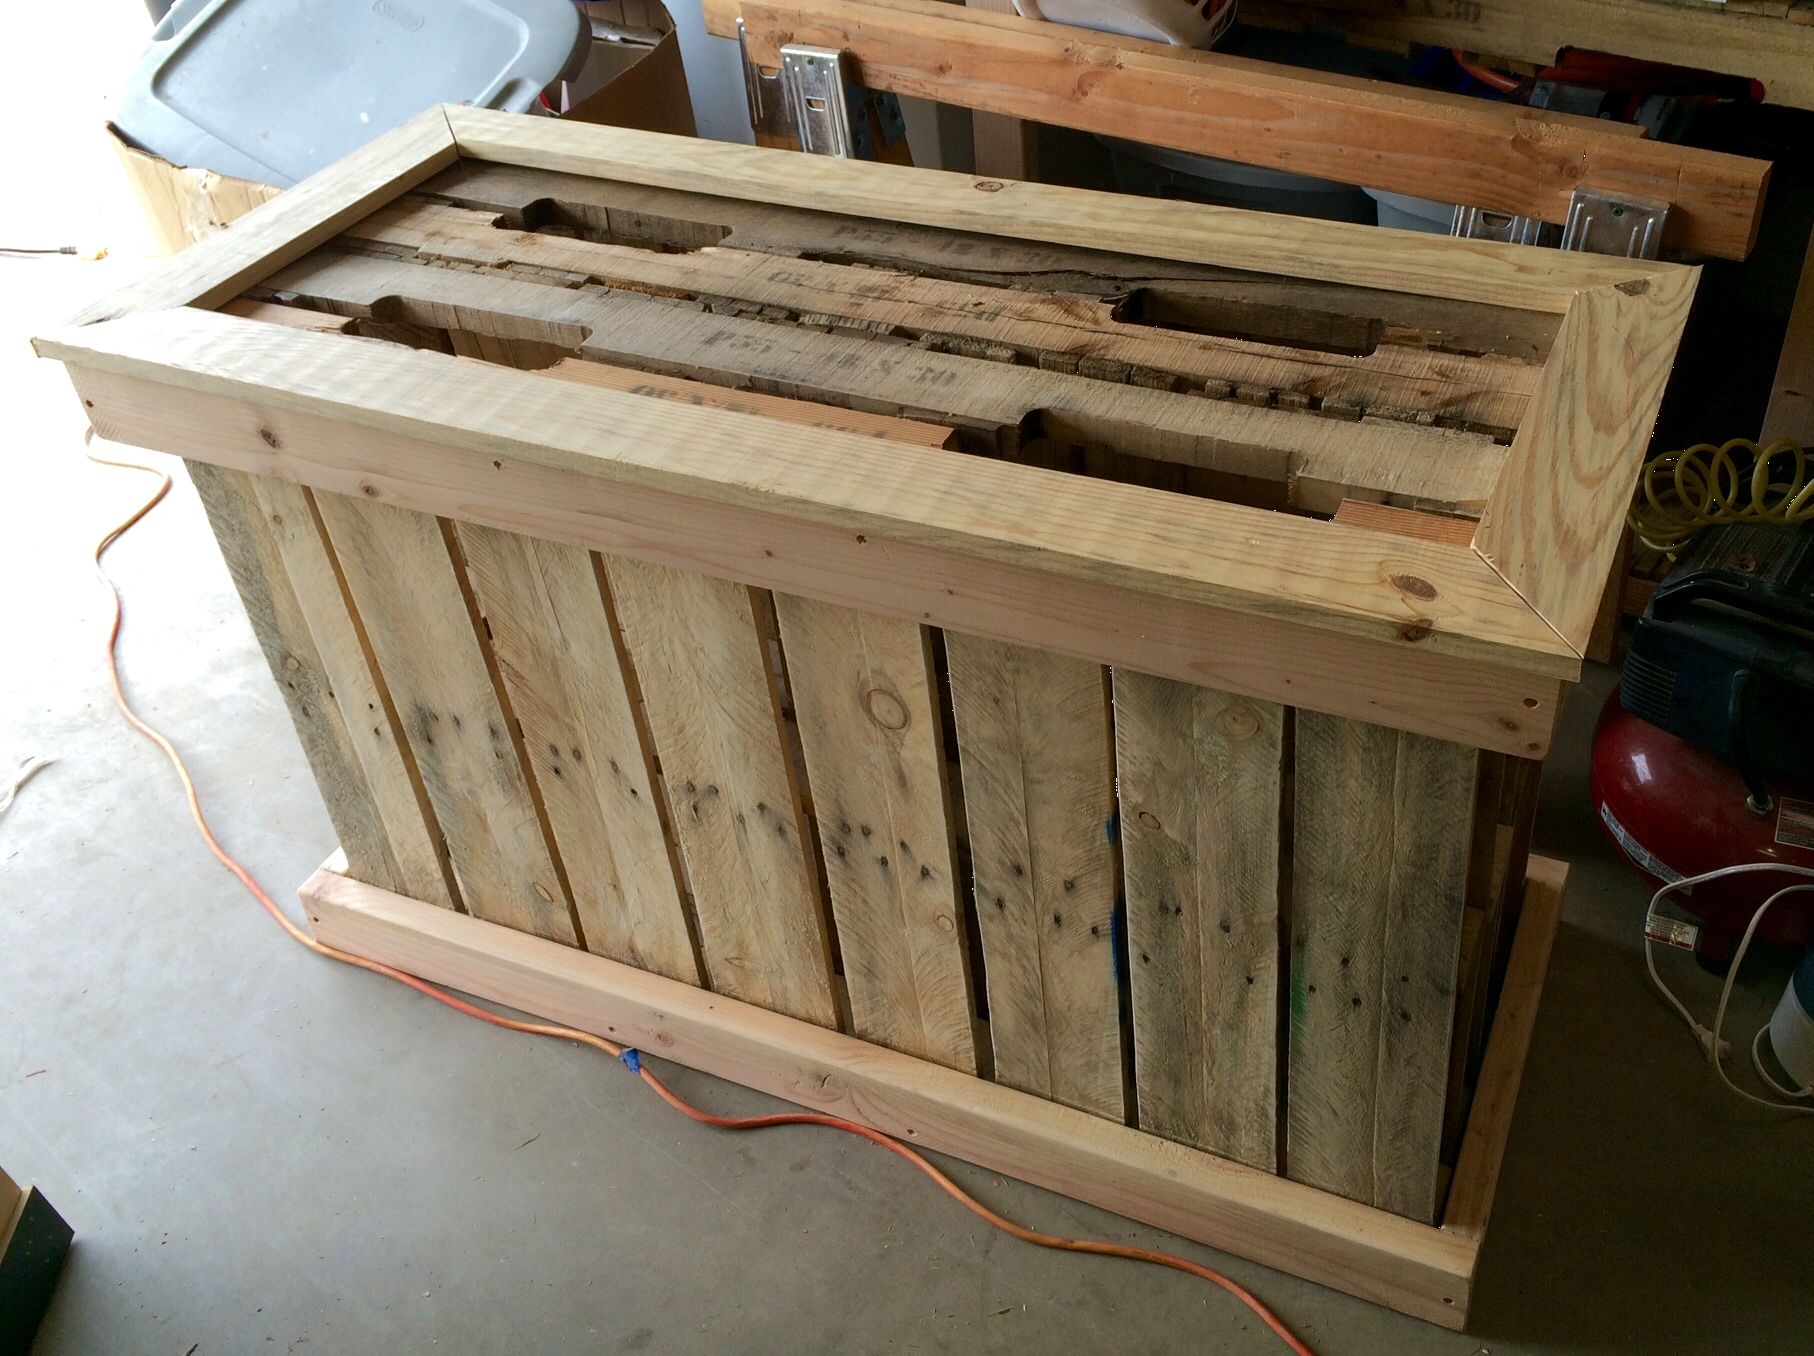 Aquarium fish tank diy - Pallet Fish Tank Stand For 75 Gallon Saltwater Tanksaltwater Aquariumfish Standdiy